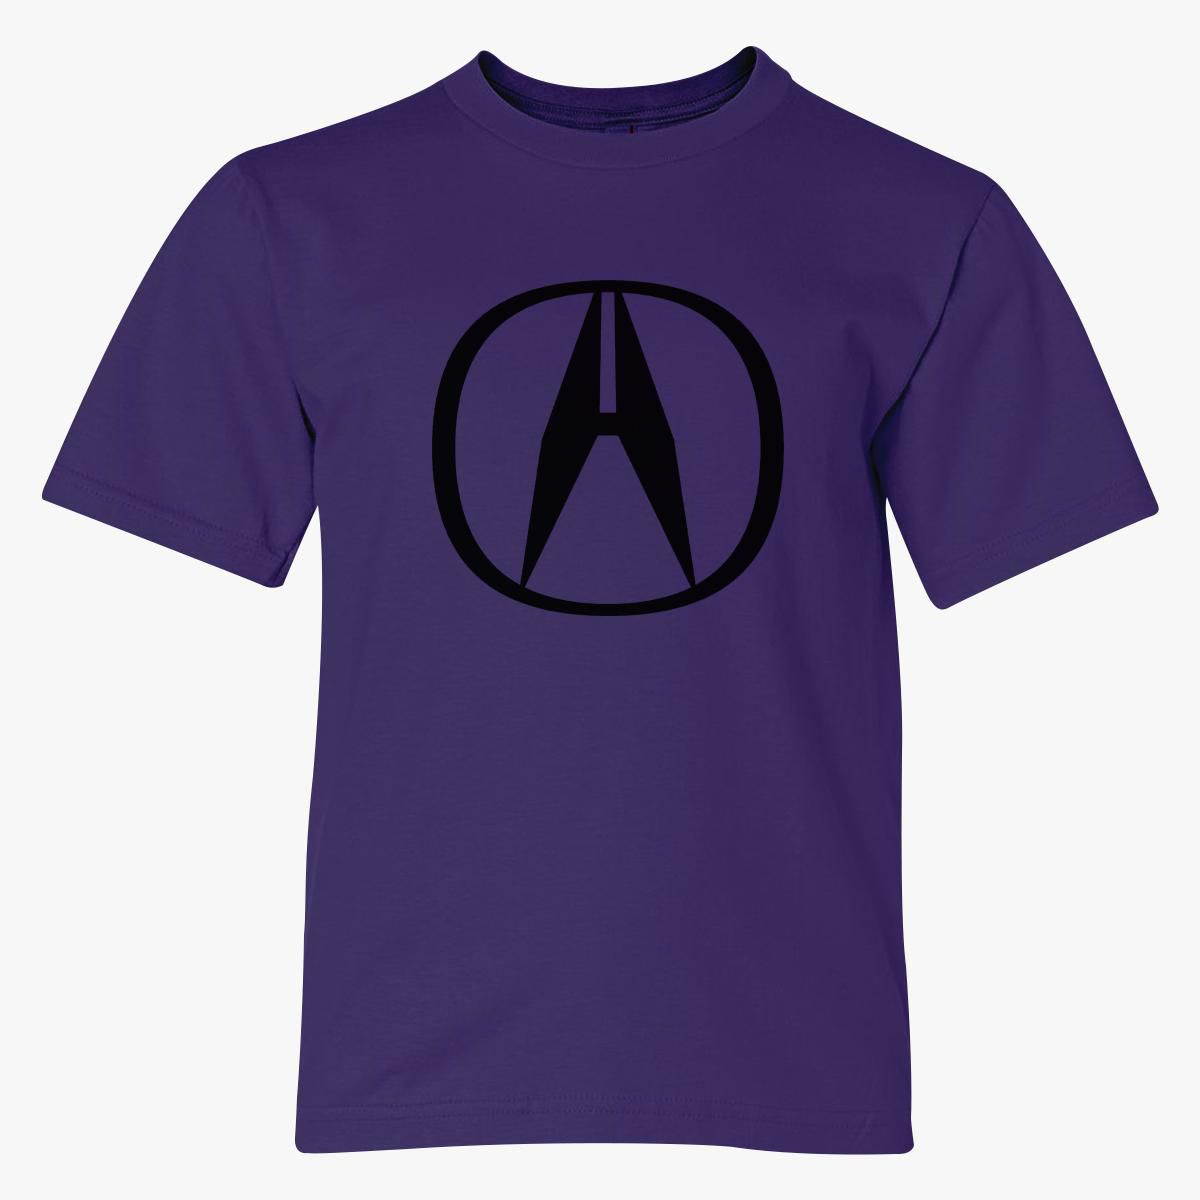 Acura Symbol Youth T-shirt